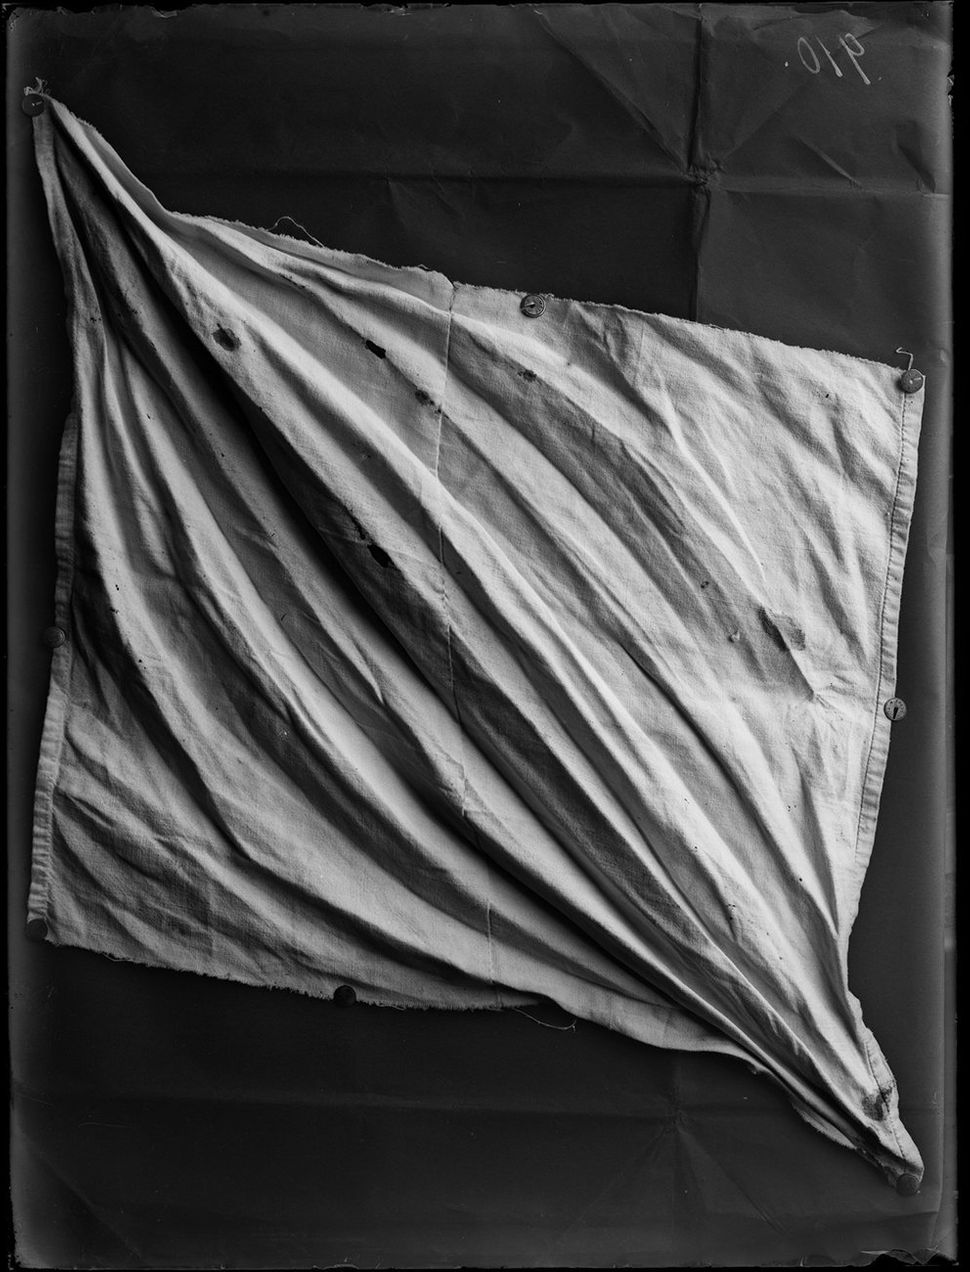 The cloth with which Madame Ducret was strangled, Beaumaroche, Vaud, September 24, 1907.